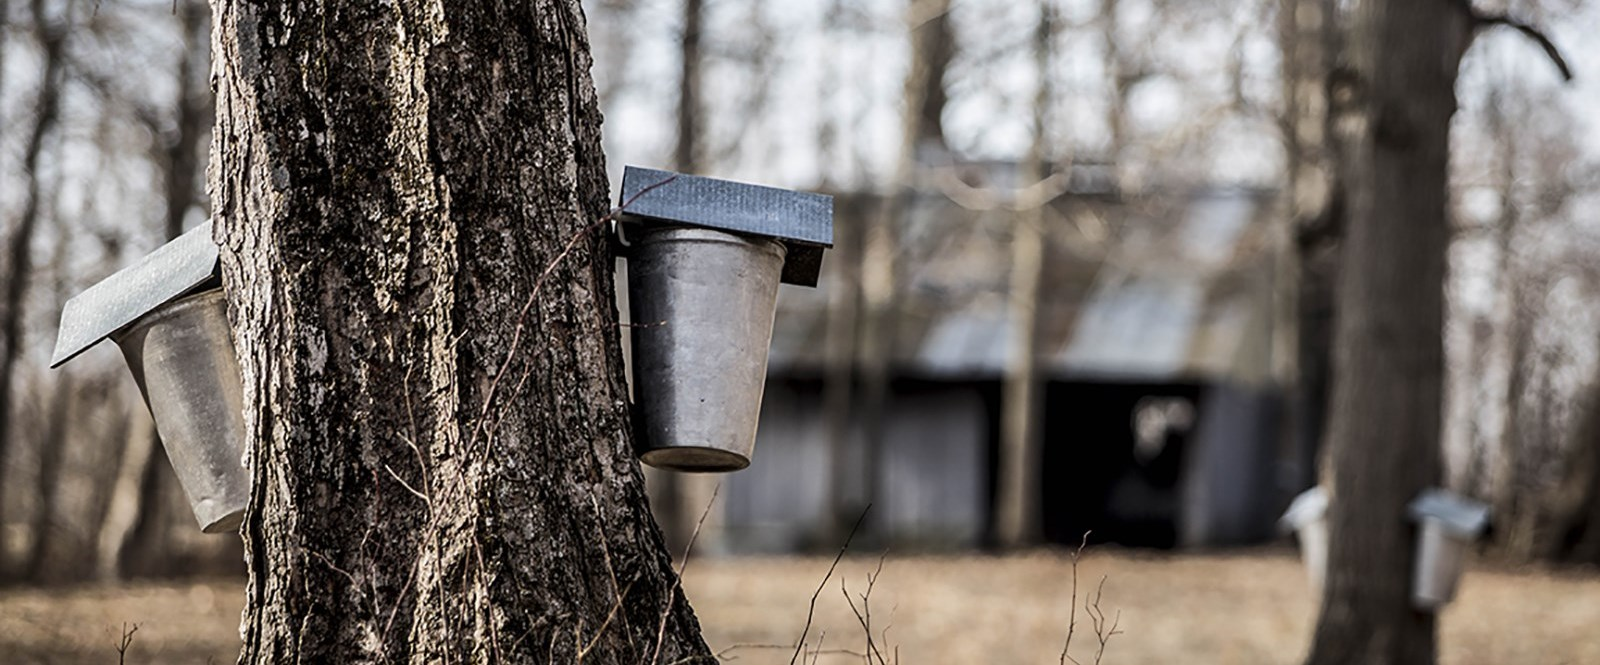 photo of trees with sap buckets